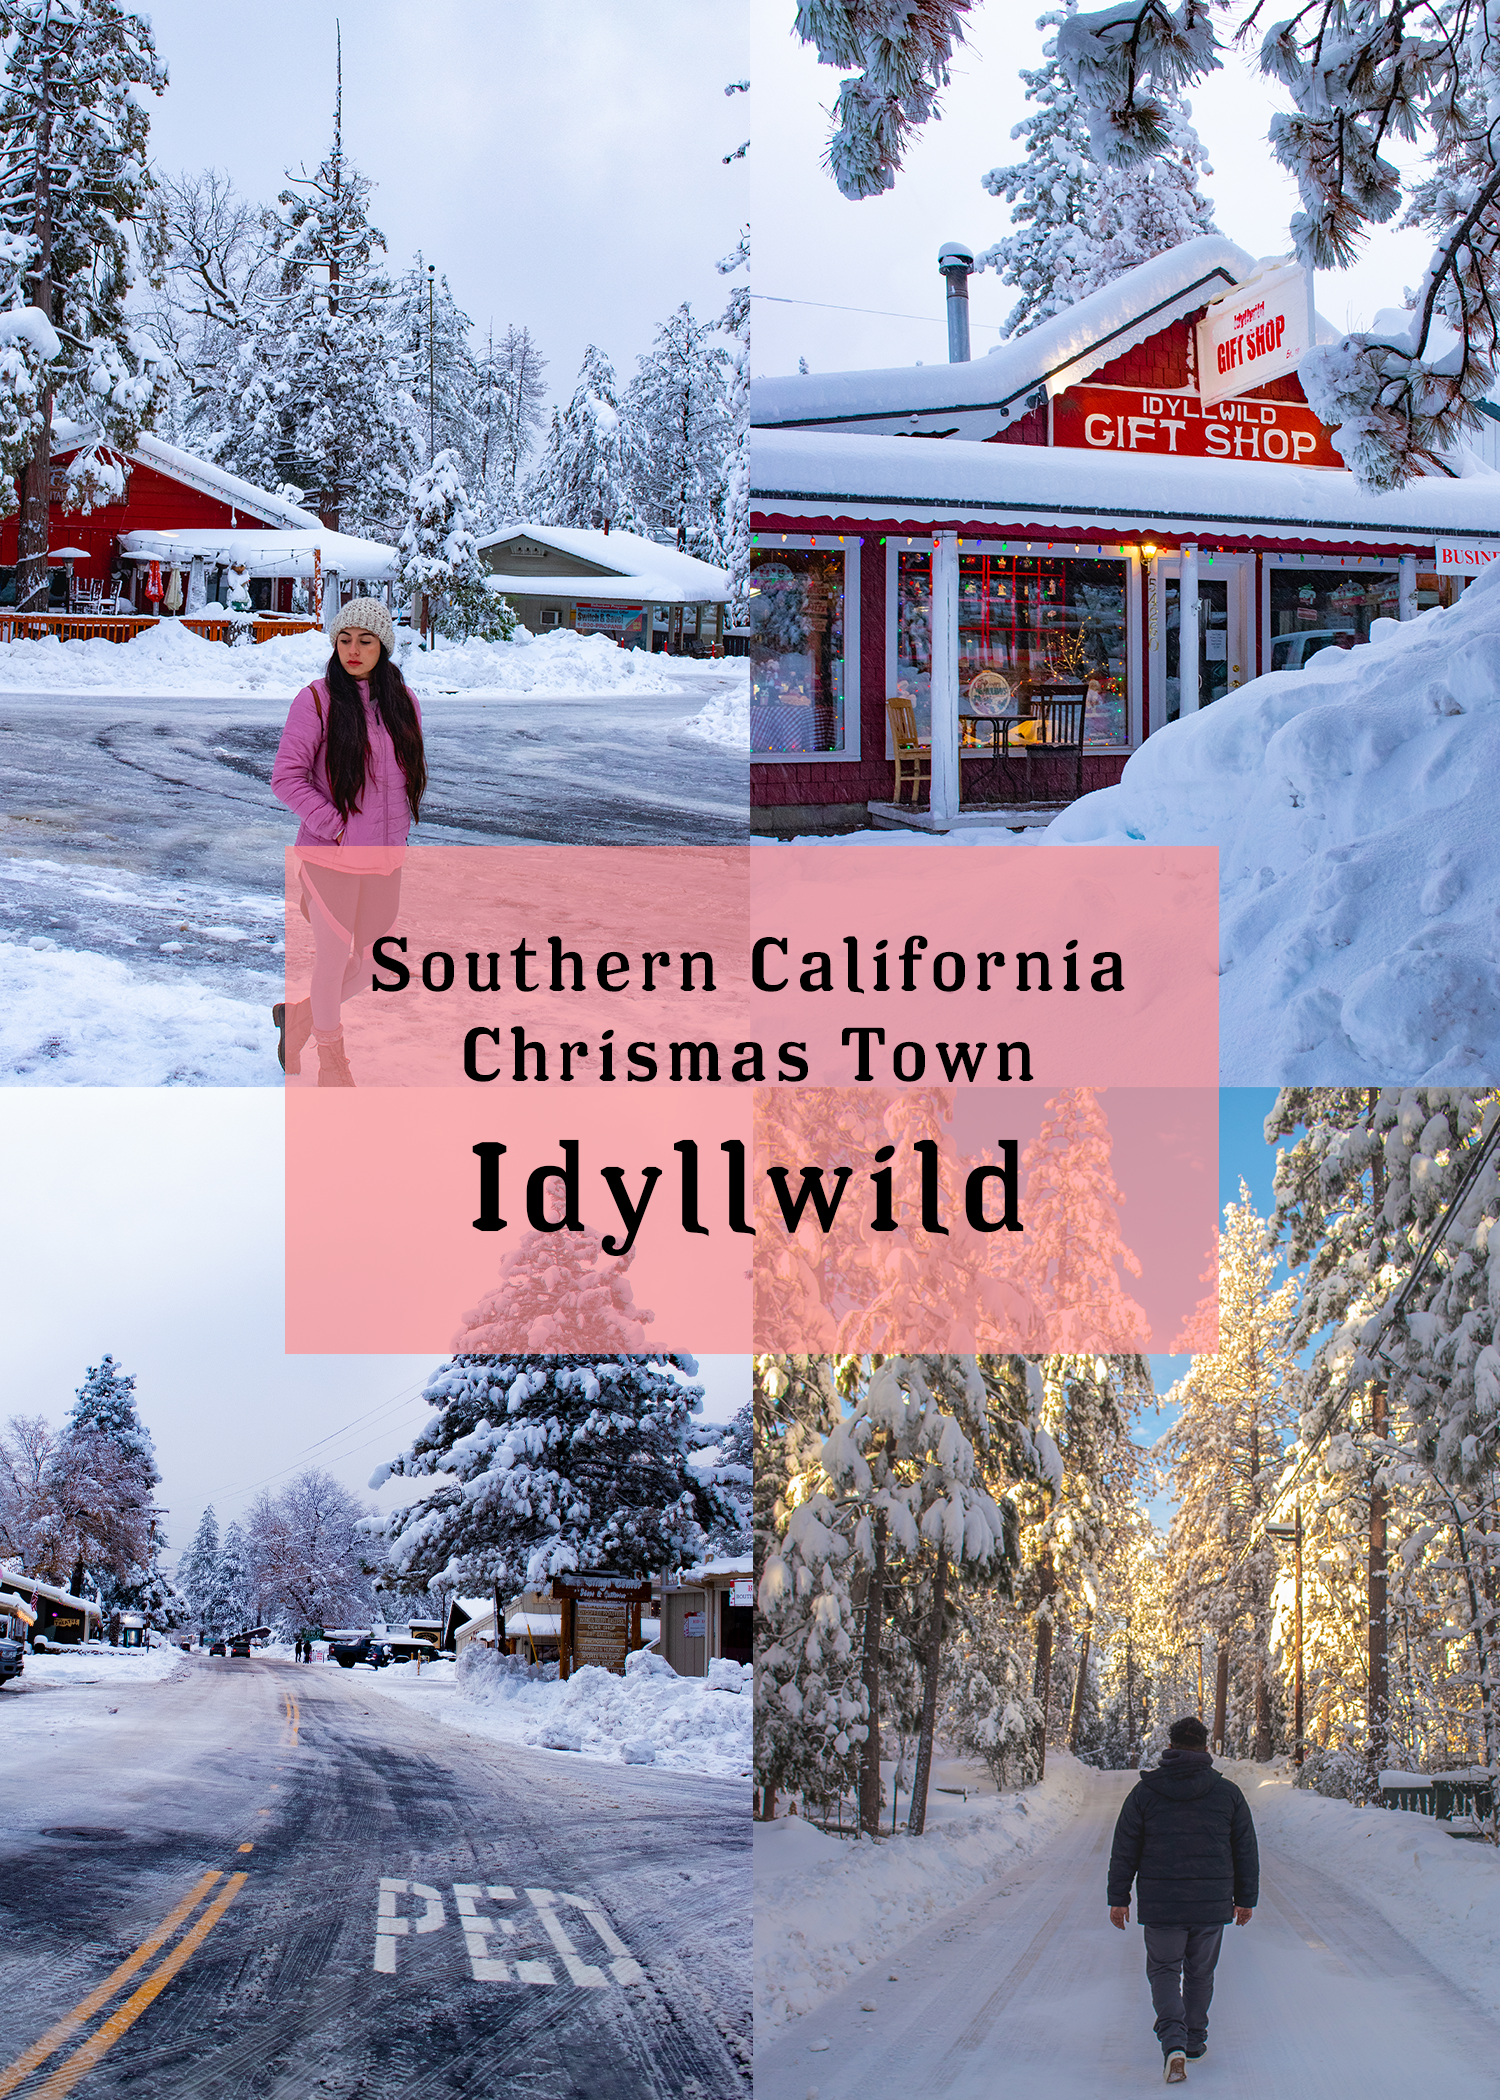 Best Southern Towns To Visit At Christmas 2020 Southern California Christmas Town: Idyllwild in 2020 | Southern